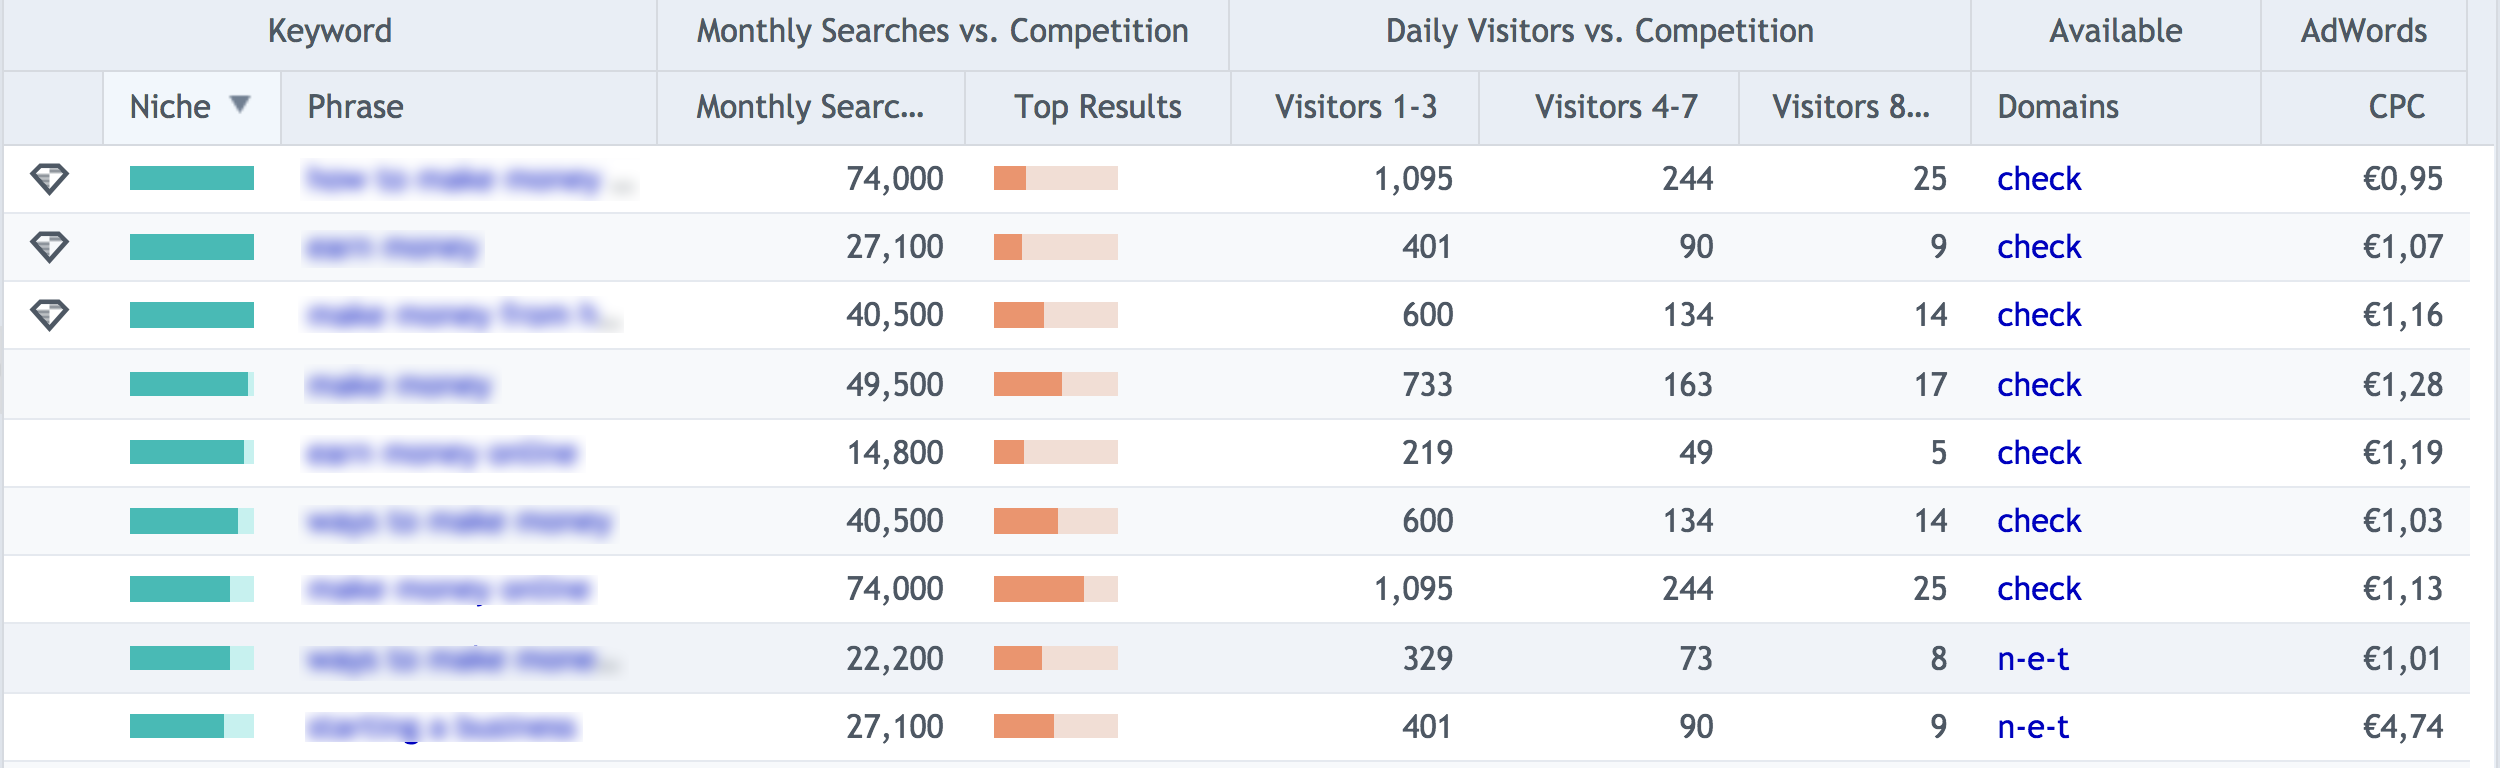 Keyword statistics like monthly searches and daily visitors